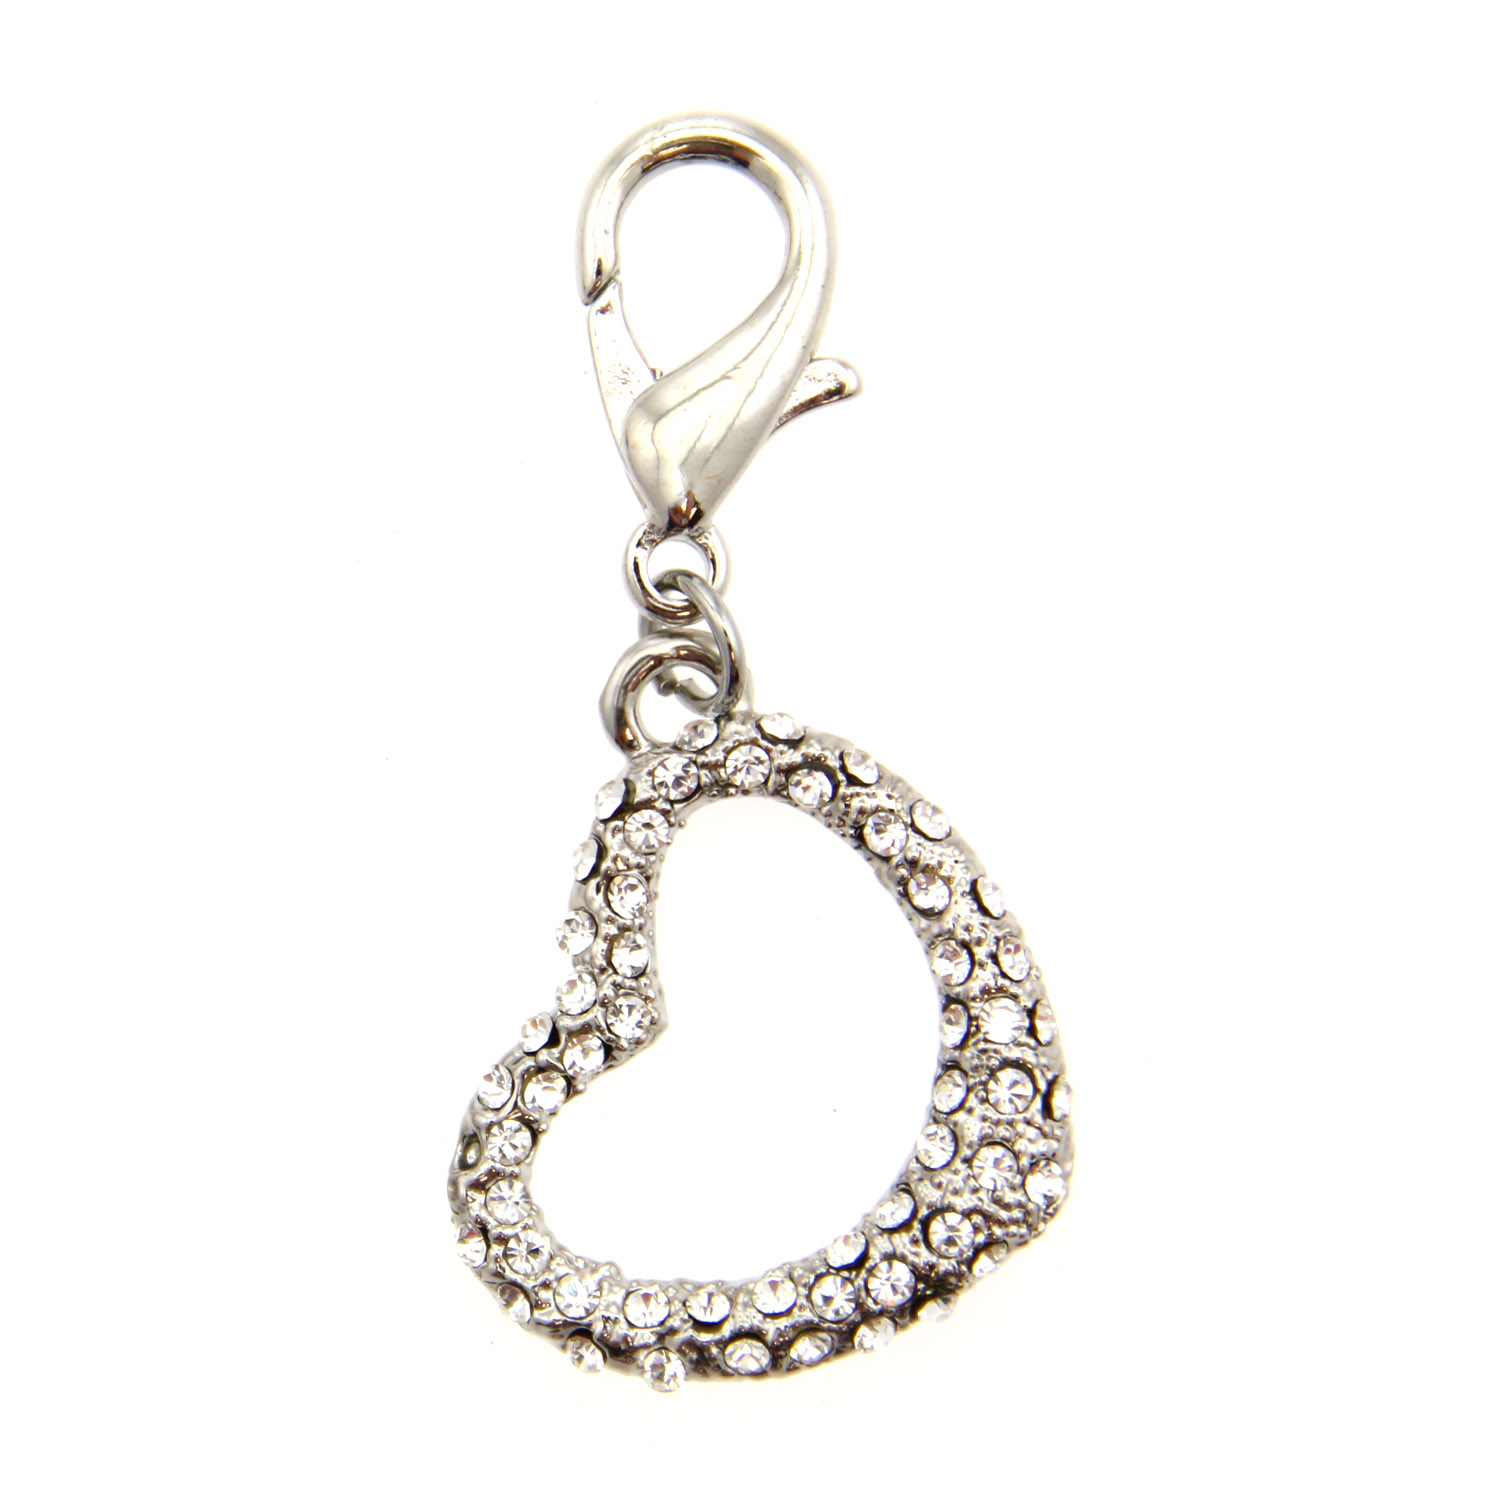 Tiff-Fou-Ny Heart D-Ring Pet Collar Charm by foufou Dog - Clear